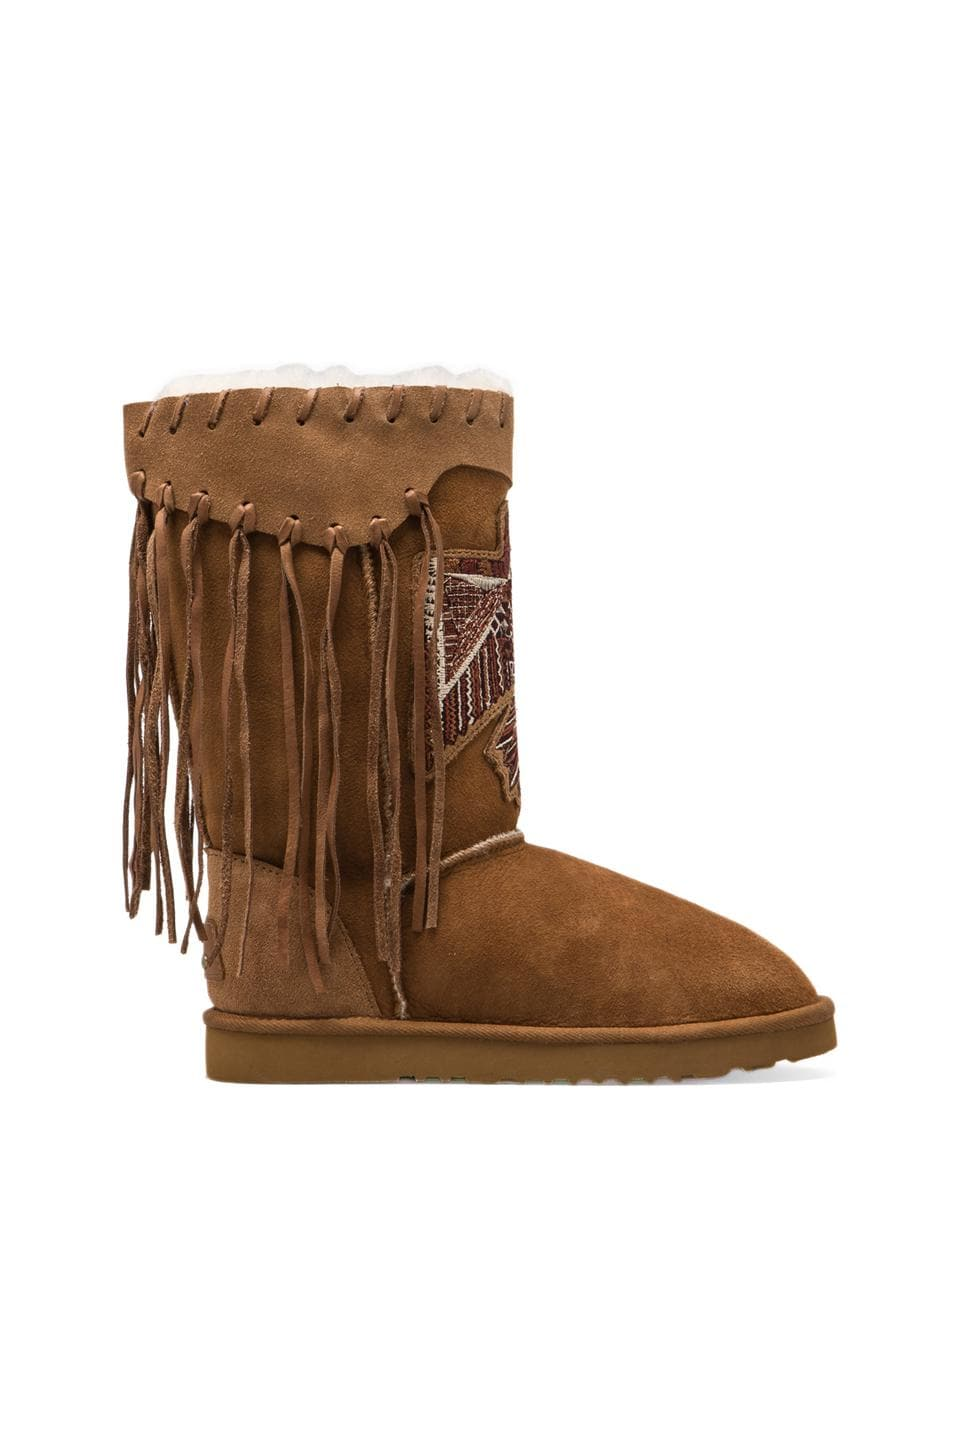 Koolaburra x Lauren Moshi Thunderbird Boot with Twinface Sheepskin in Chestnut